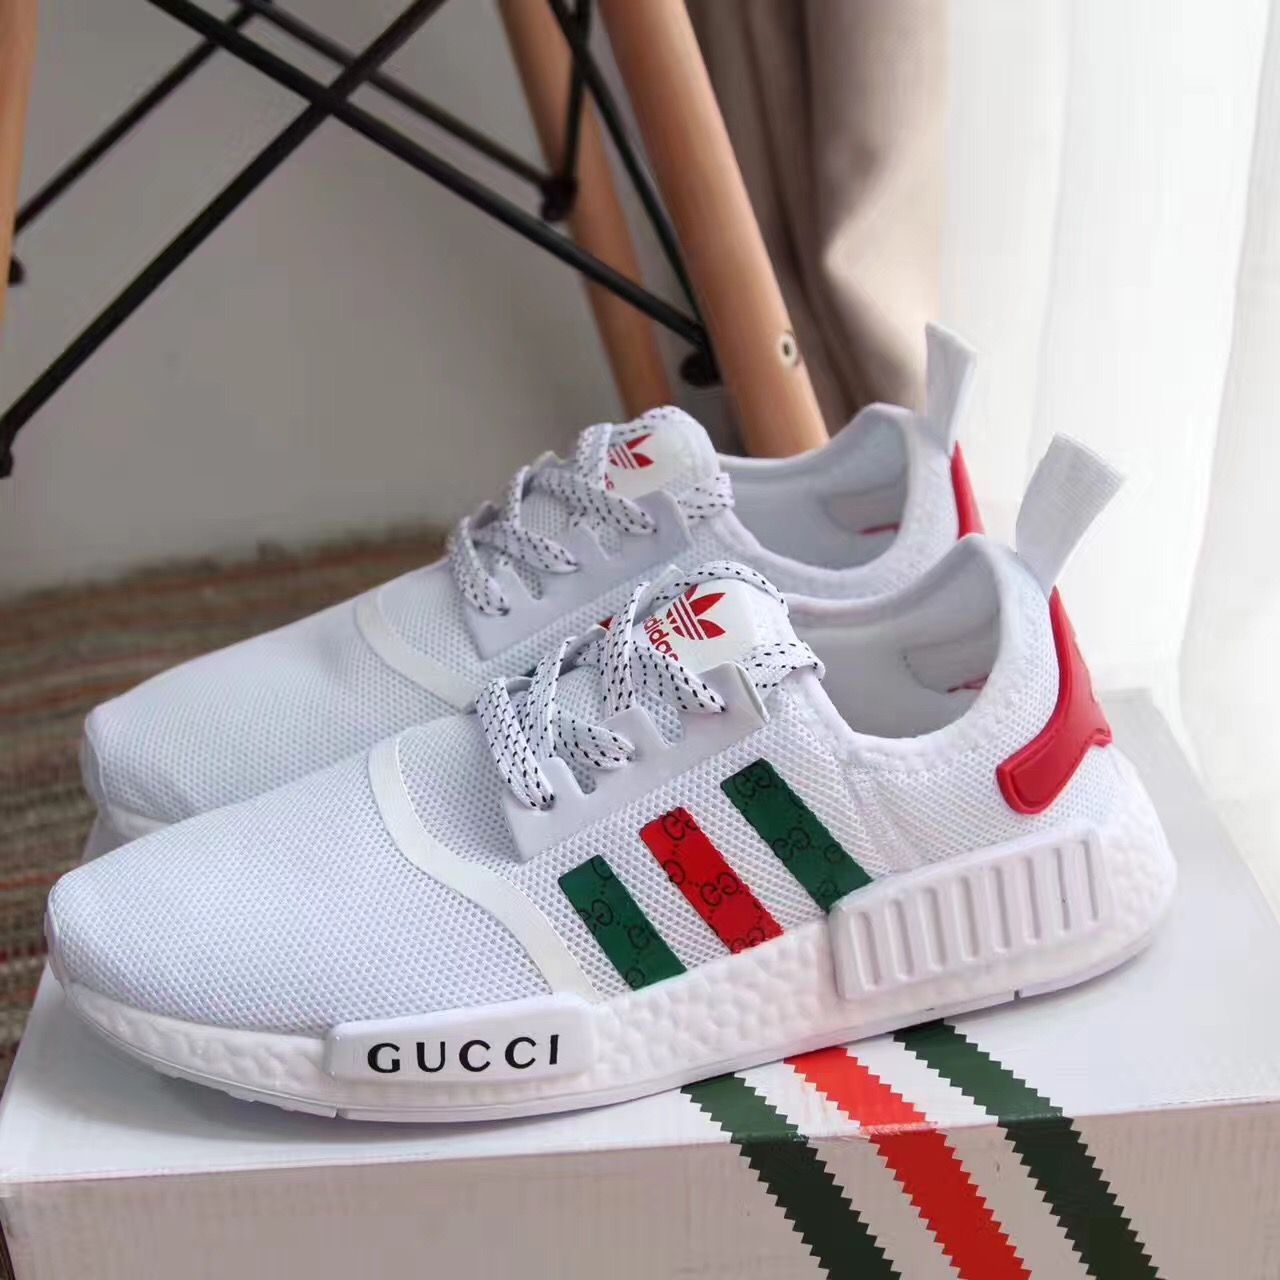 Gucci Shoes Nikes